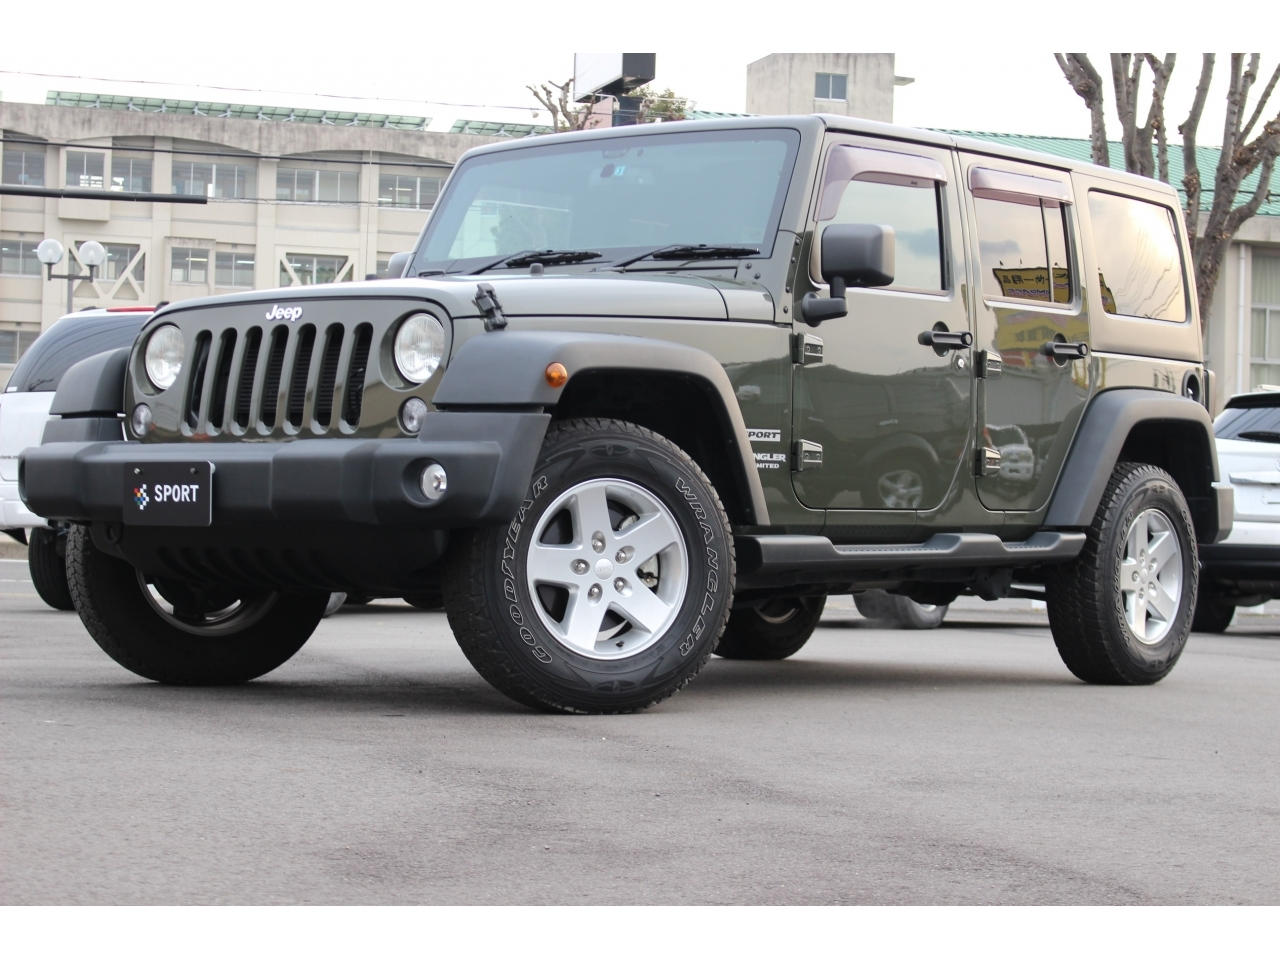 Buy used JEEP WRANGLER UNLIMITED at Japanese auctions